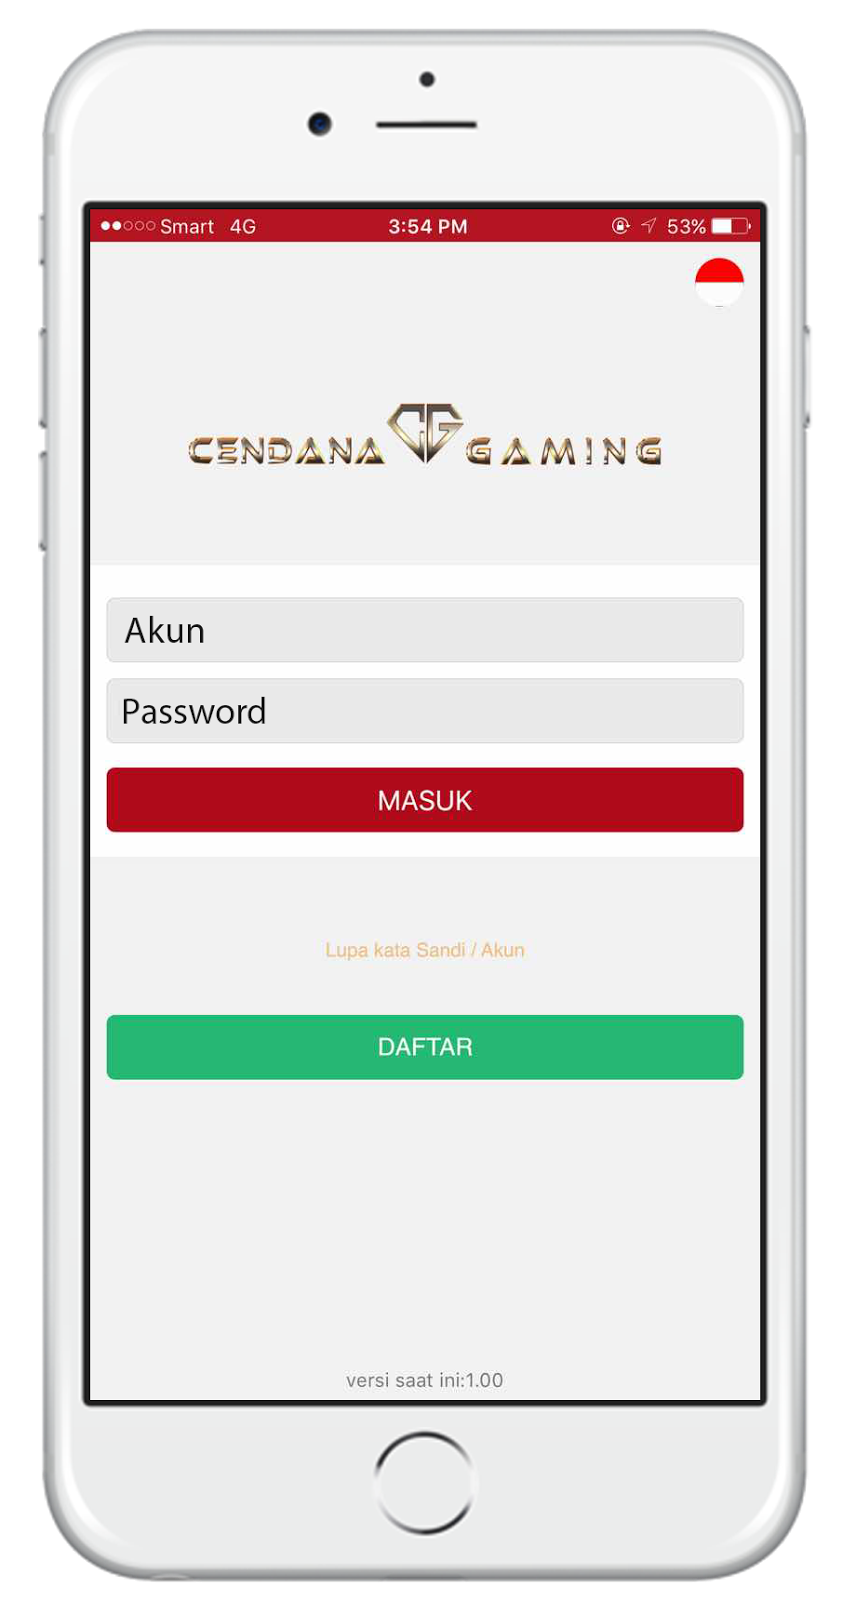 Cendana Gaming: PANDUAN CARA MENDOWNLOAD APLIKASI IOS GAME SBOBET DAN CASINO